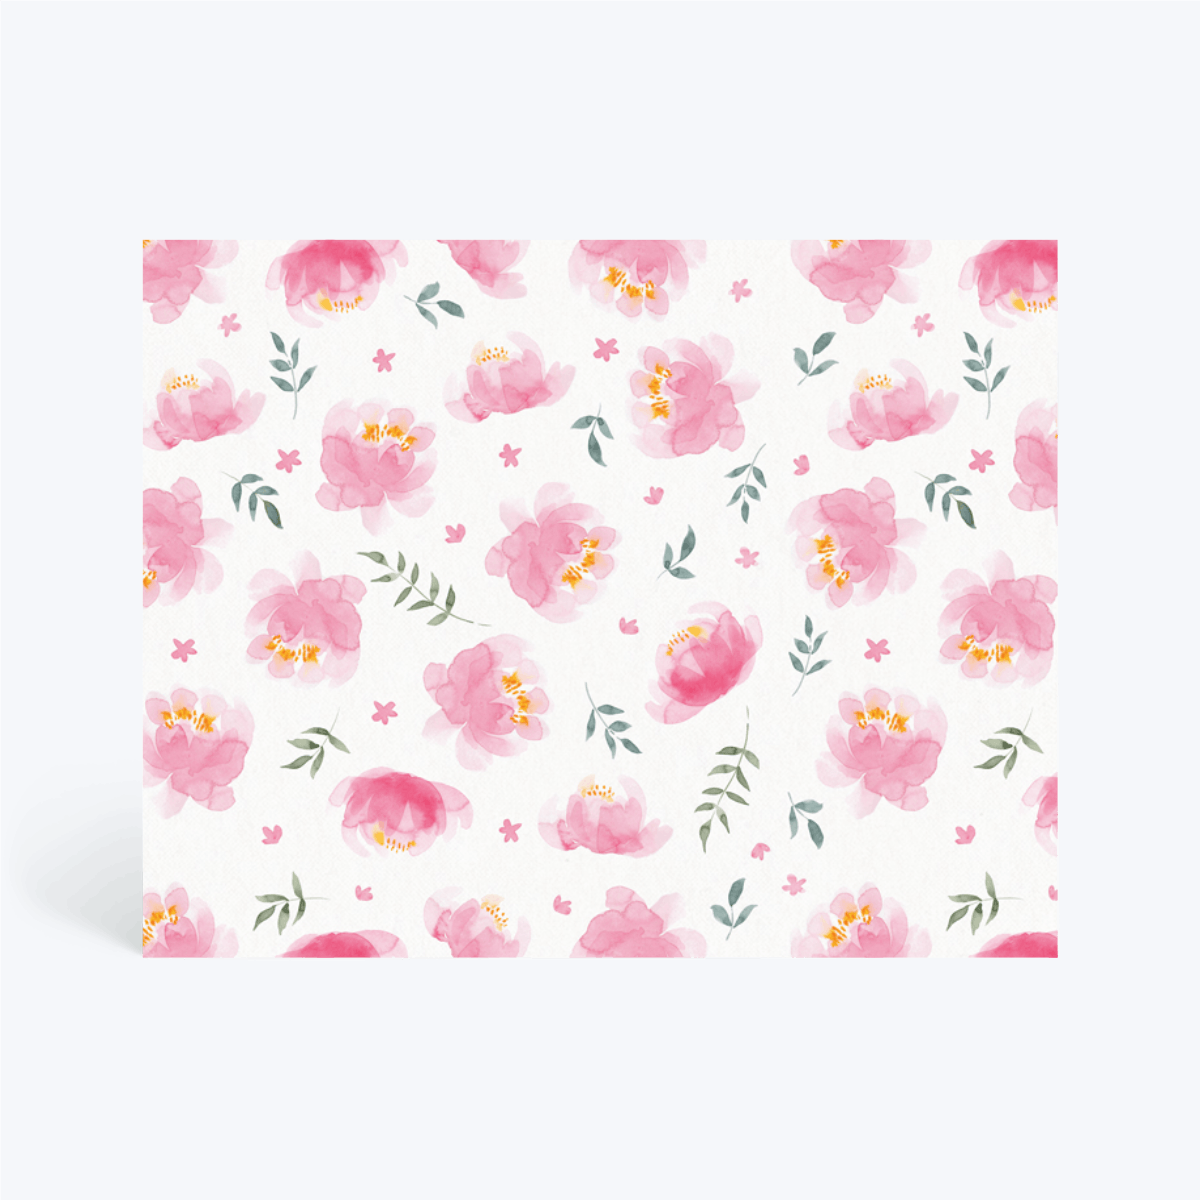 Https%3a%2f%2fwww.papier.com%2fproduct image%2f43846%2f29%2fpeonies 11086 back 1534935868.png?ixlib=rb 1.1